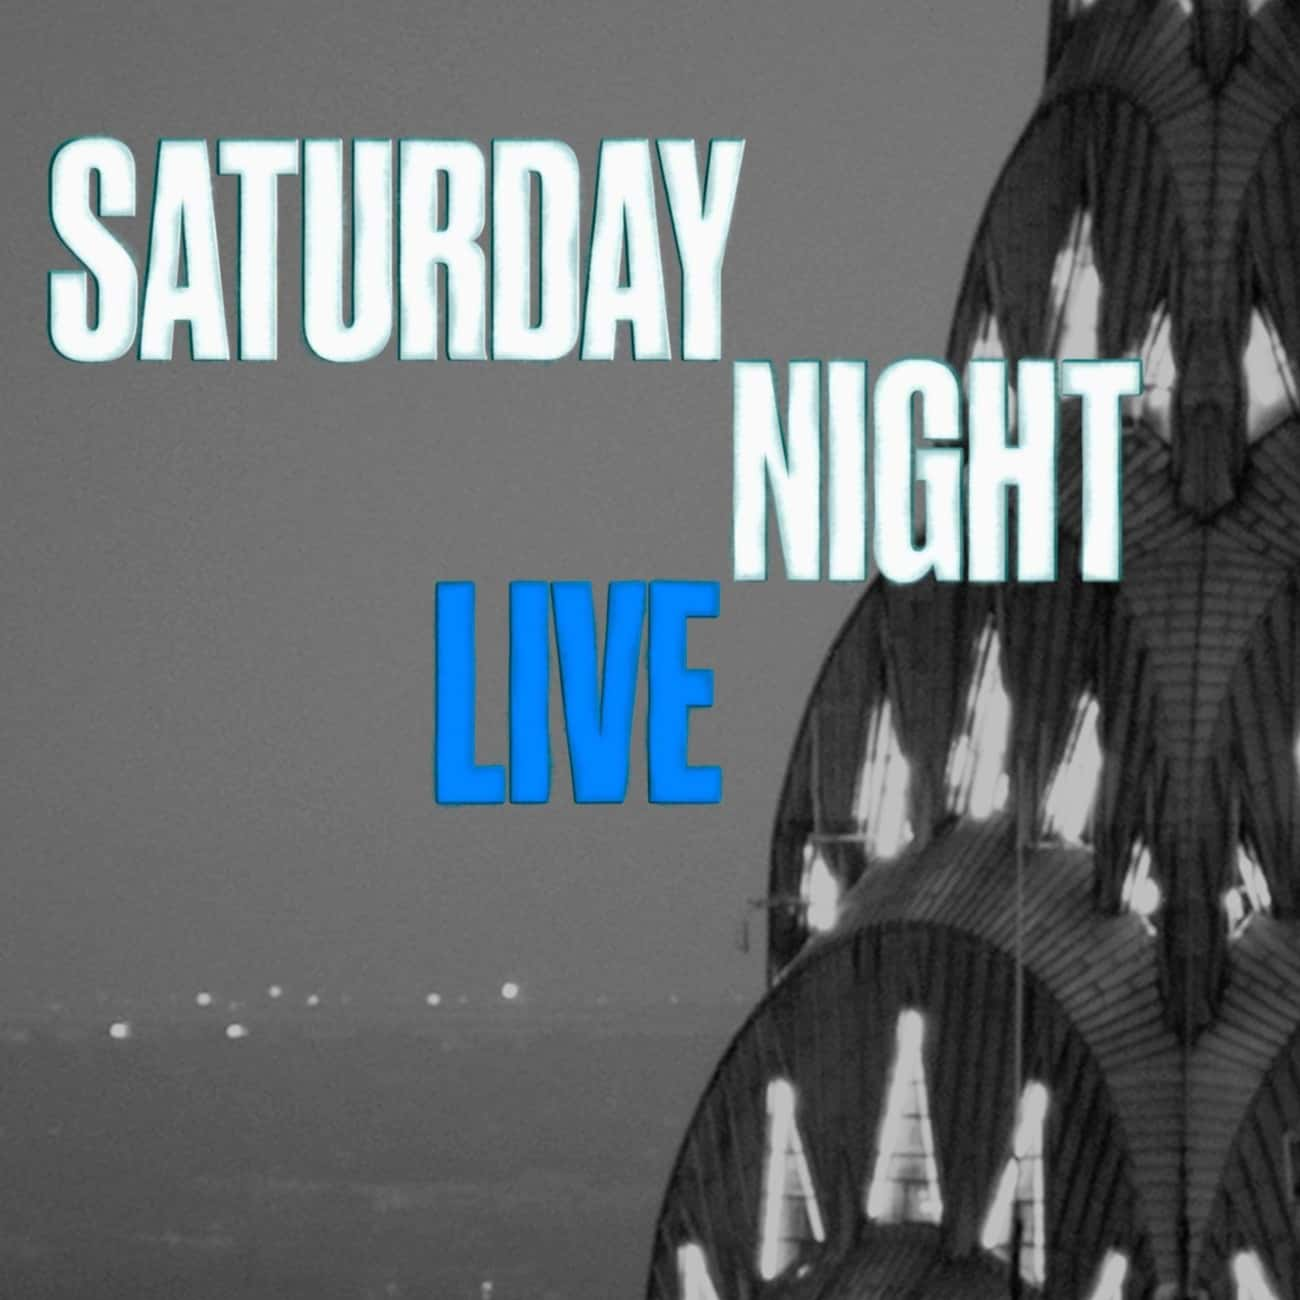 Saturday Night Live is listed (or ranked) 2 on the list What to Watch If You Love 'Last Week Tonight with John Oliver'